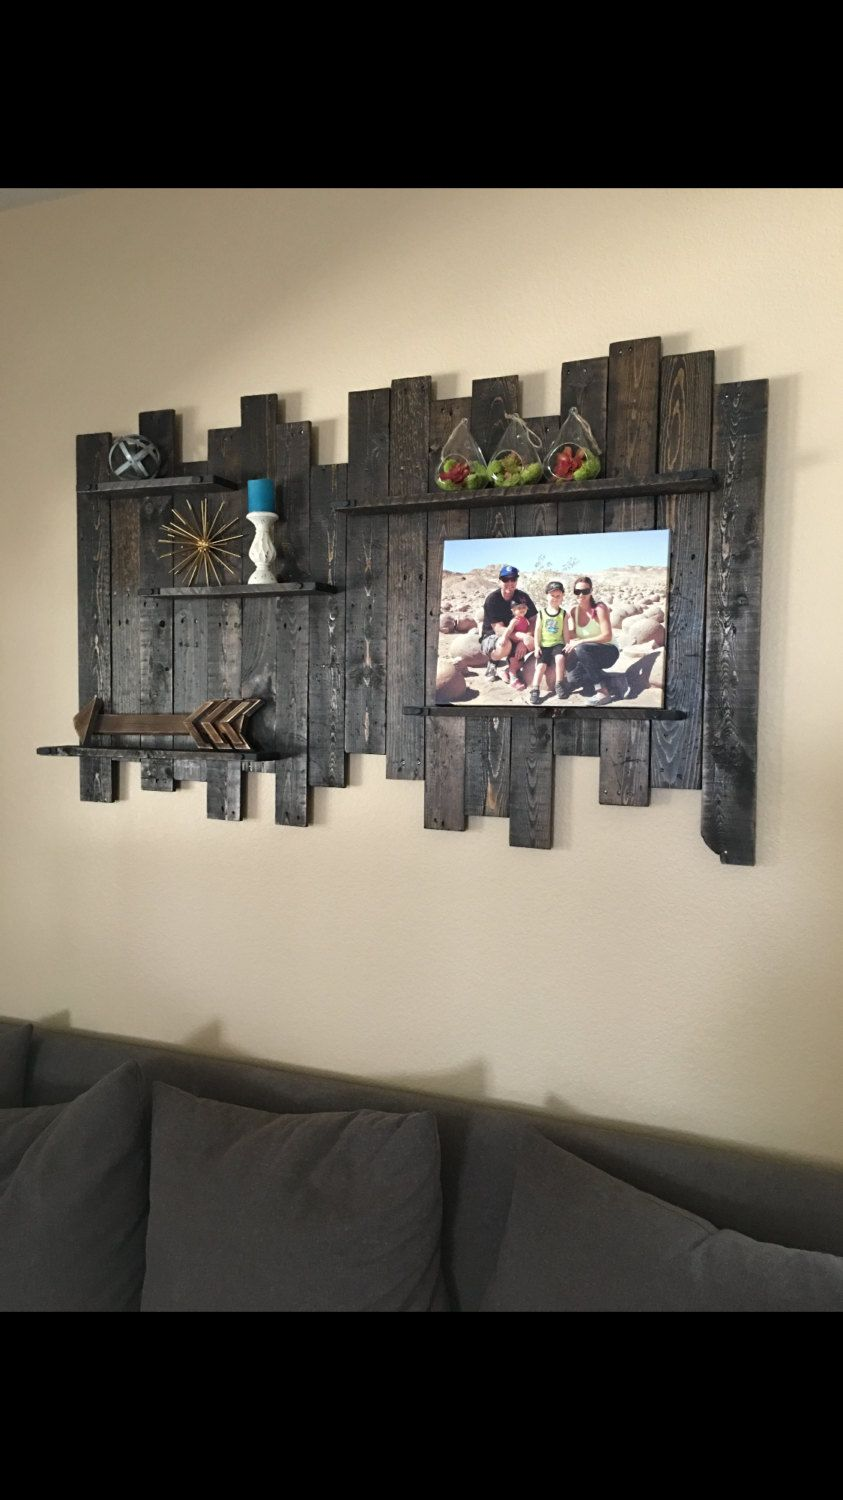 Pallet wall decor with antique turquoise by pineknobsandcrickets rustic reclaimed wood wall decorshelving 60 wide x 36 high x deep inches item shown in dark walnut stain sealed with polyurethane light sheen solid amipublicfo Gallery